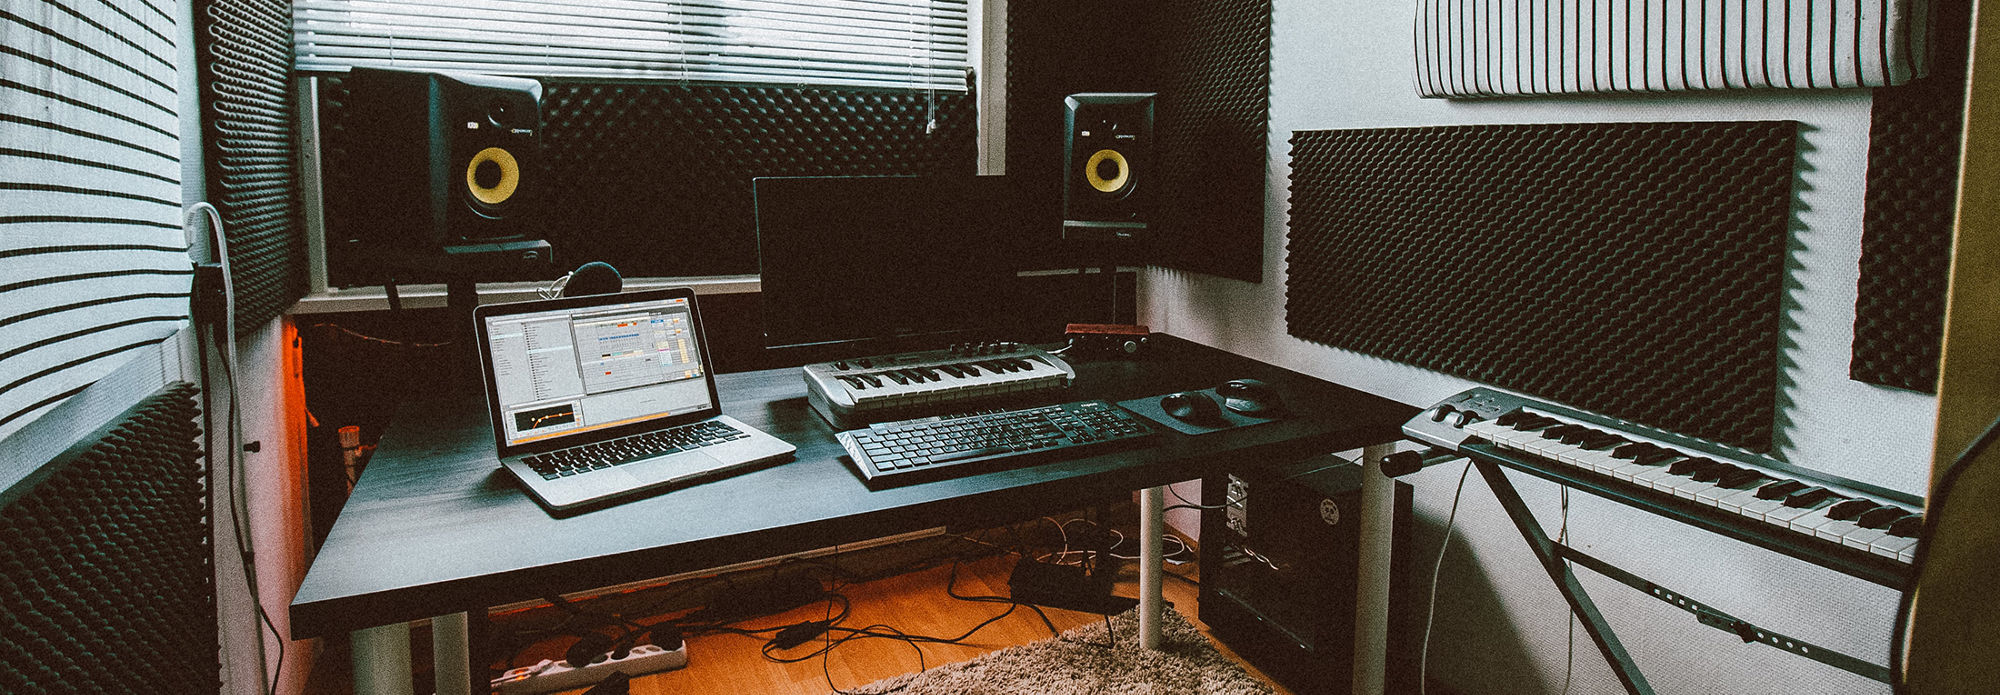 A typical home studio setup for music production